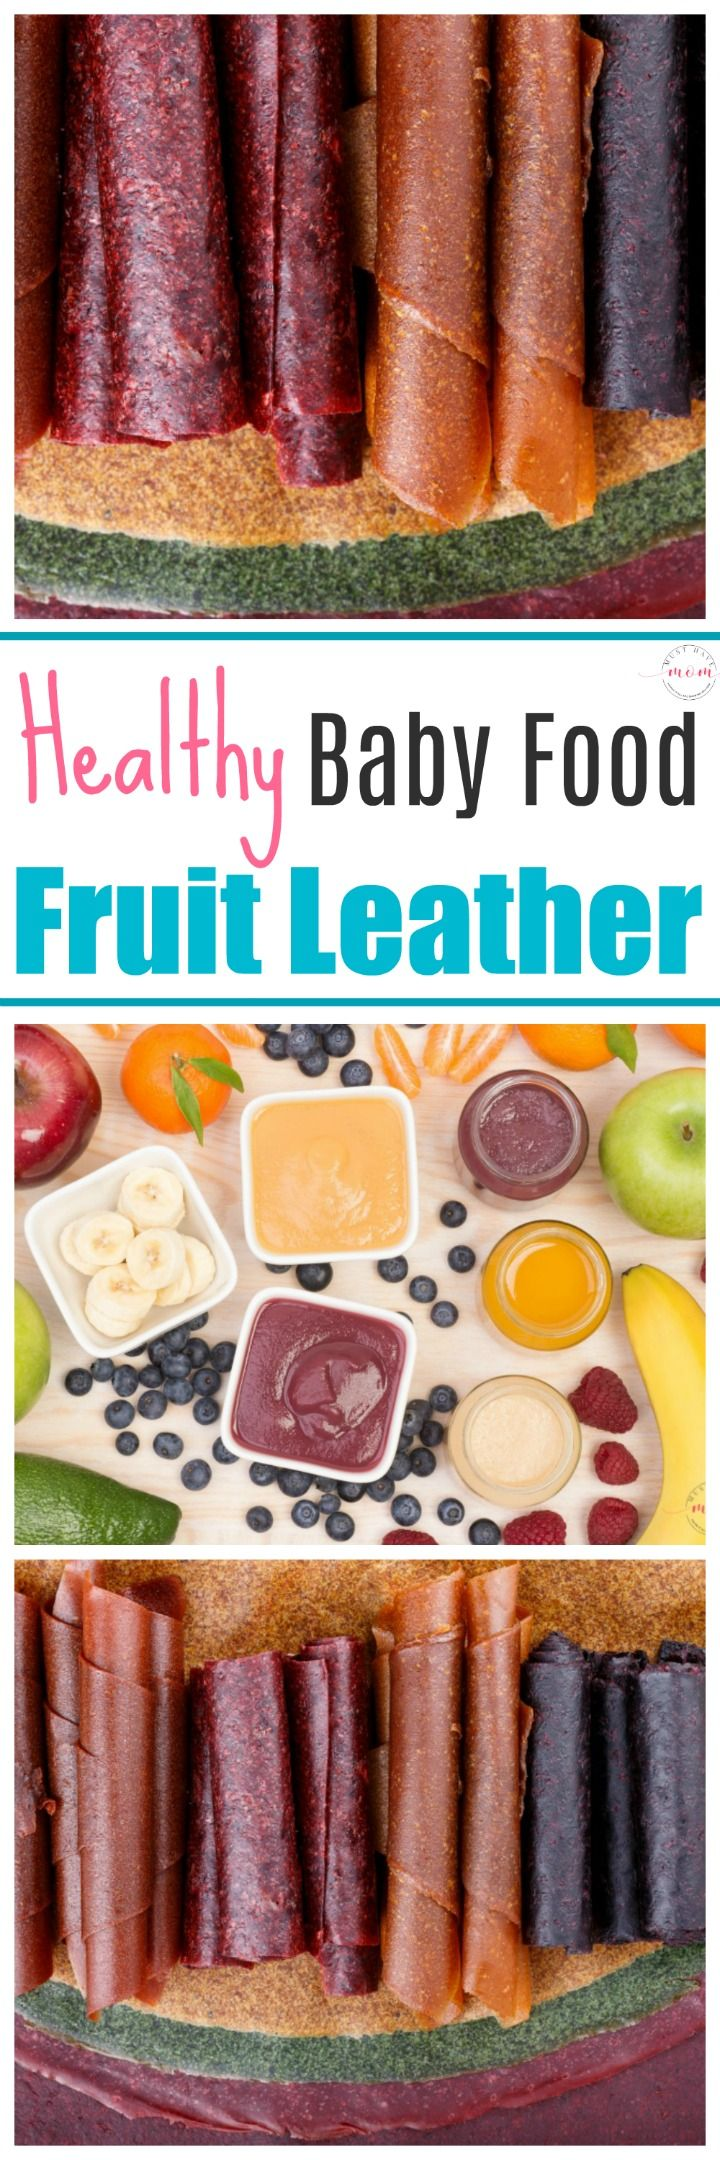 Uses for leftover baby food! Baby food fruit leather recipe. Super easy and healthy toddler snack idea!